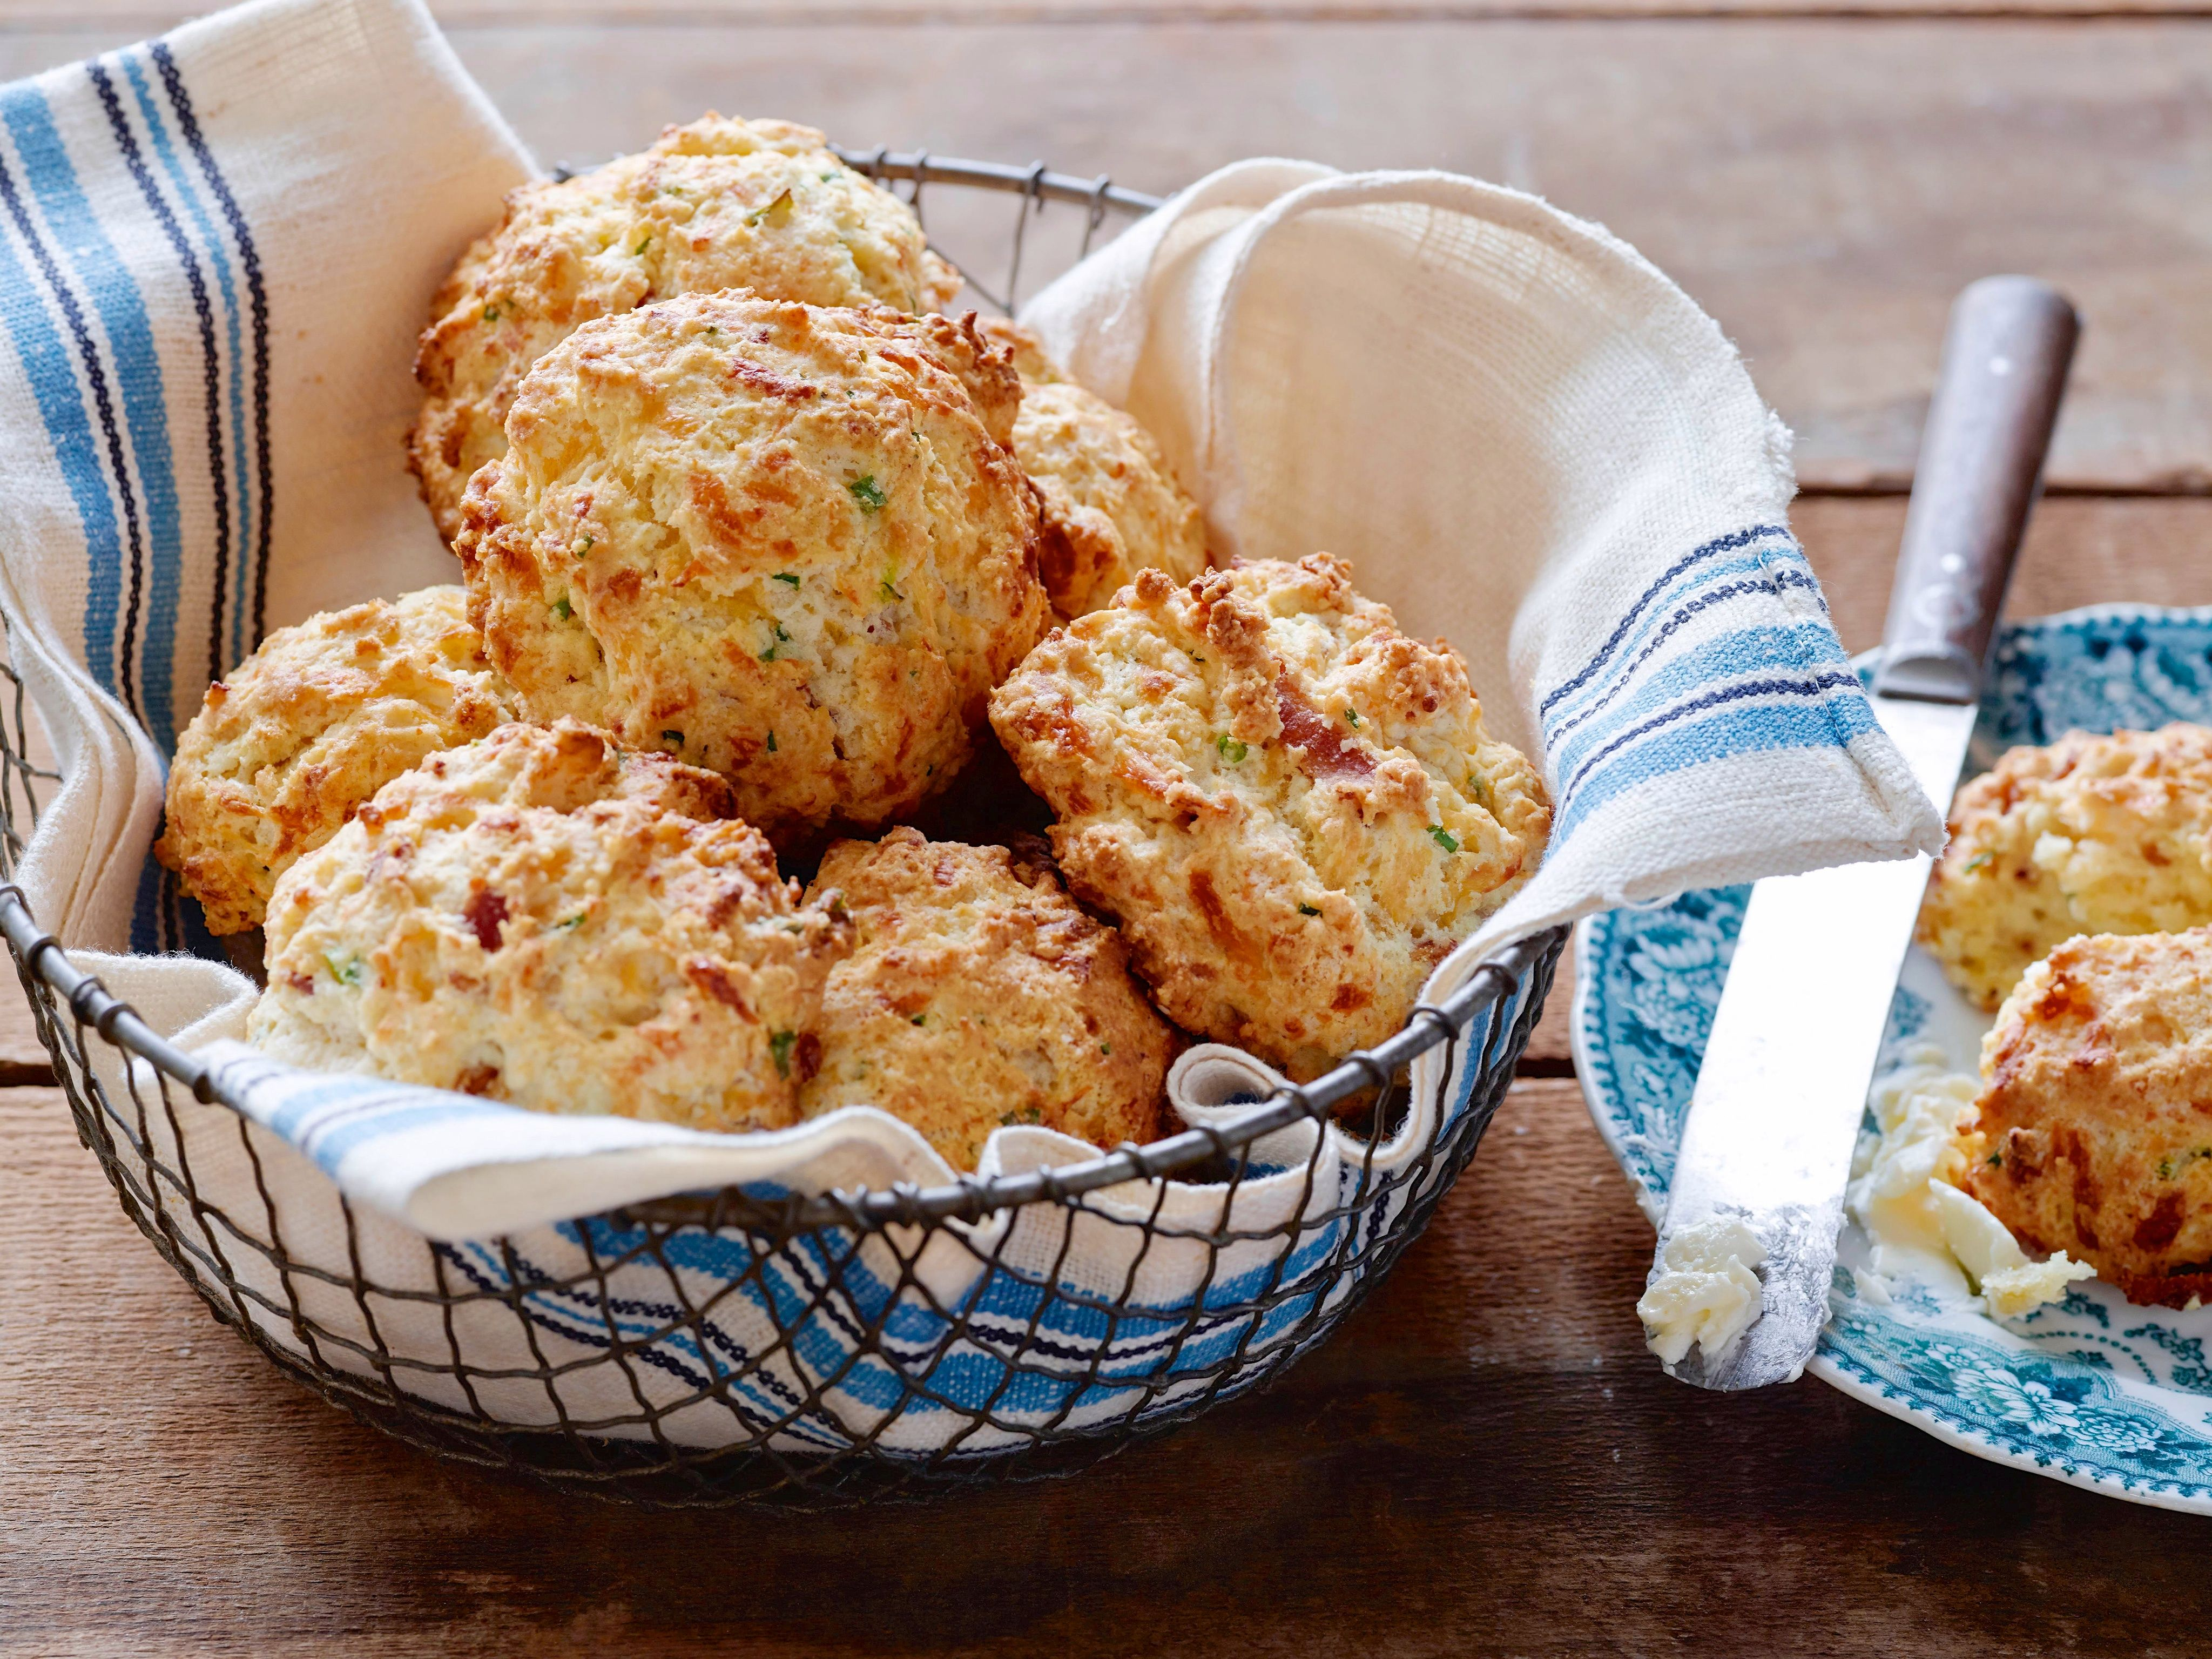 Bacon cheddar and chive biscuits recipe bbq side dish